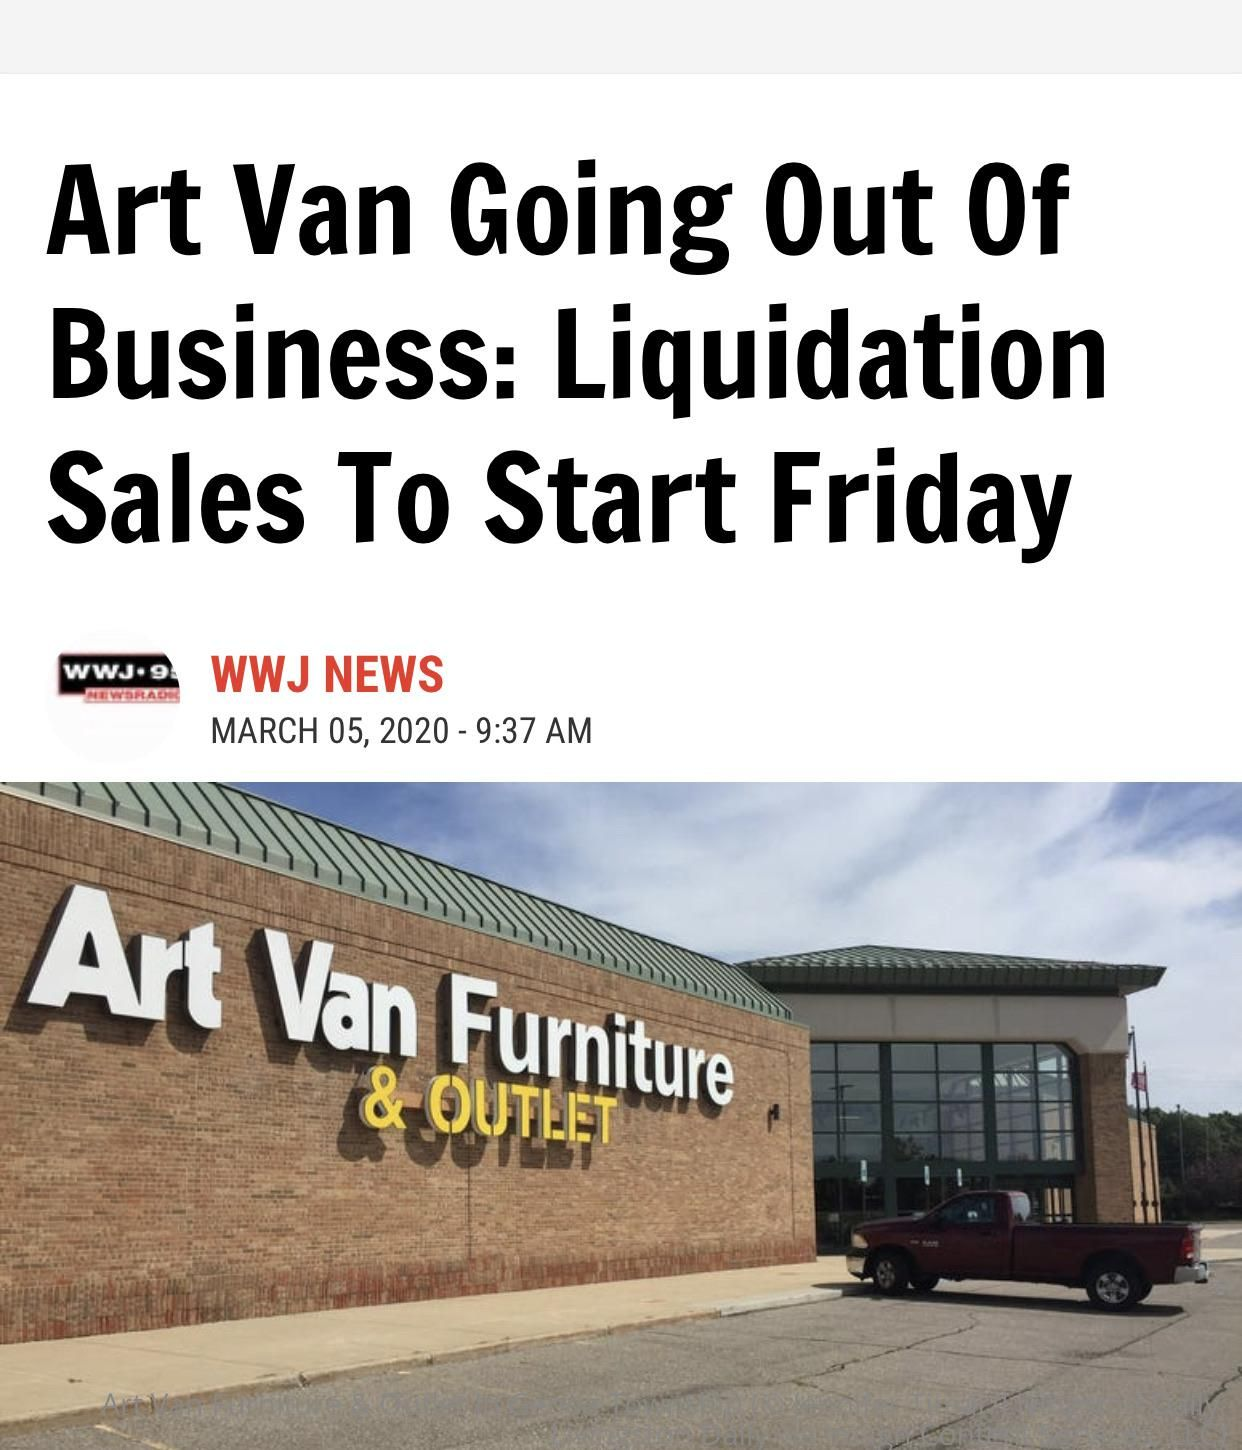 Crazy Eddie S Motie News Art Van Furniture Going Out Of Business A Tale Of Going Out Of Business Art Van Michigan Art